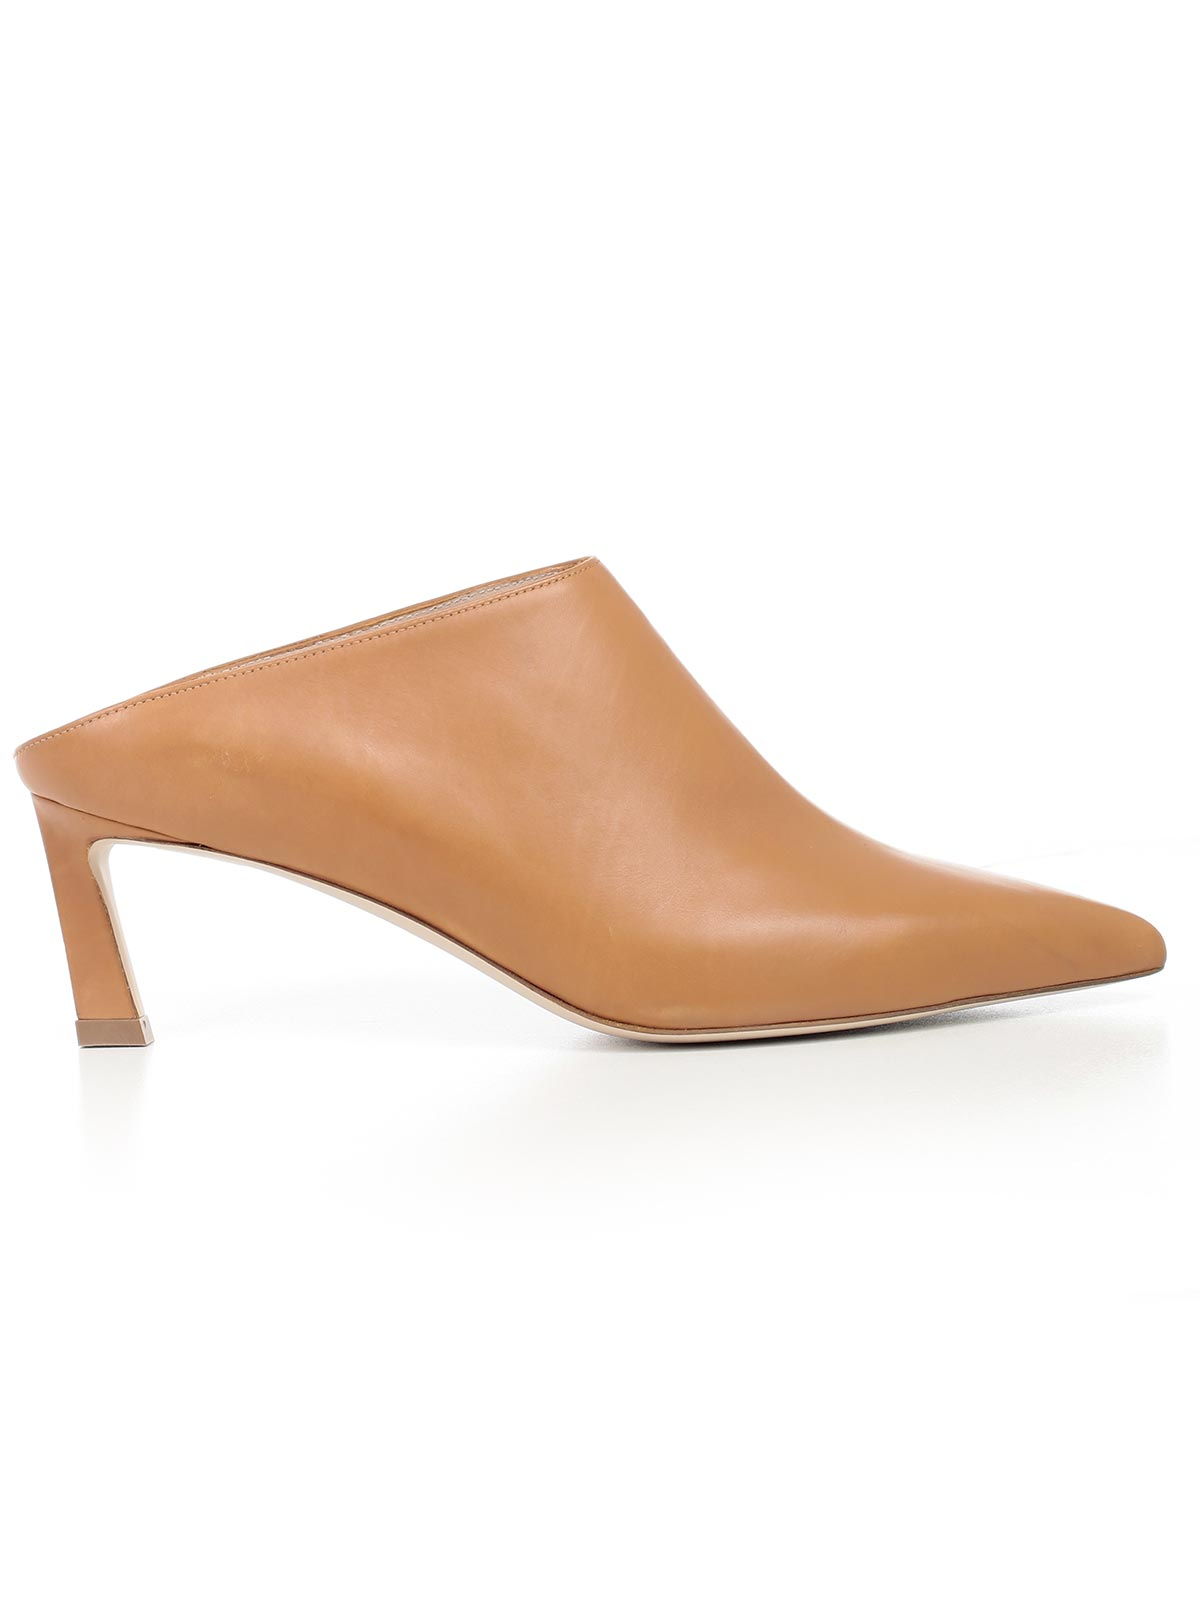 Picture of Stuart Weitzman Mules